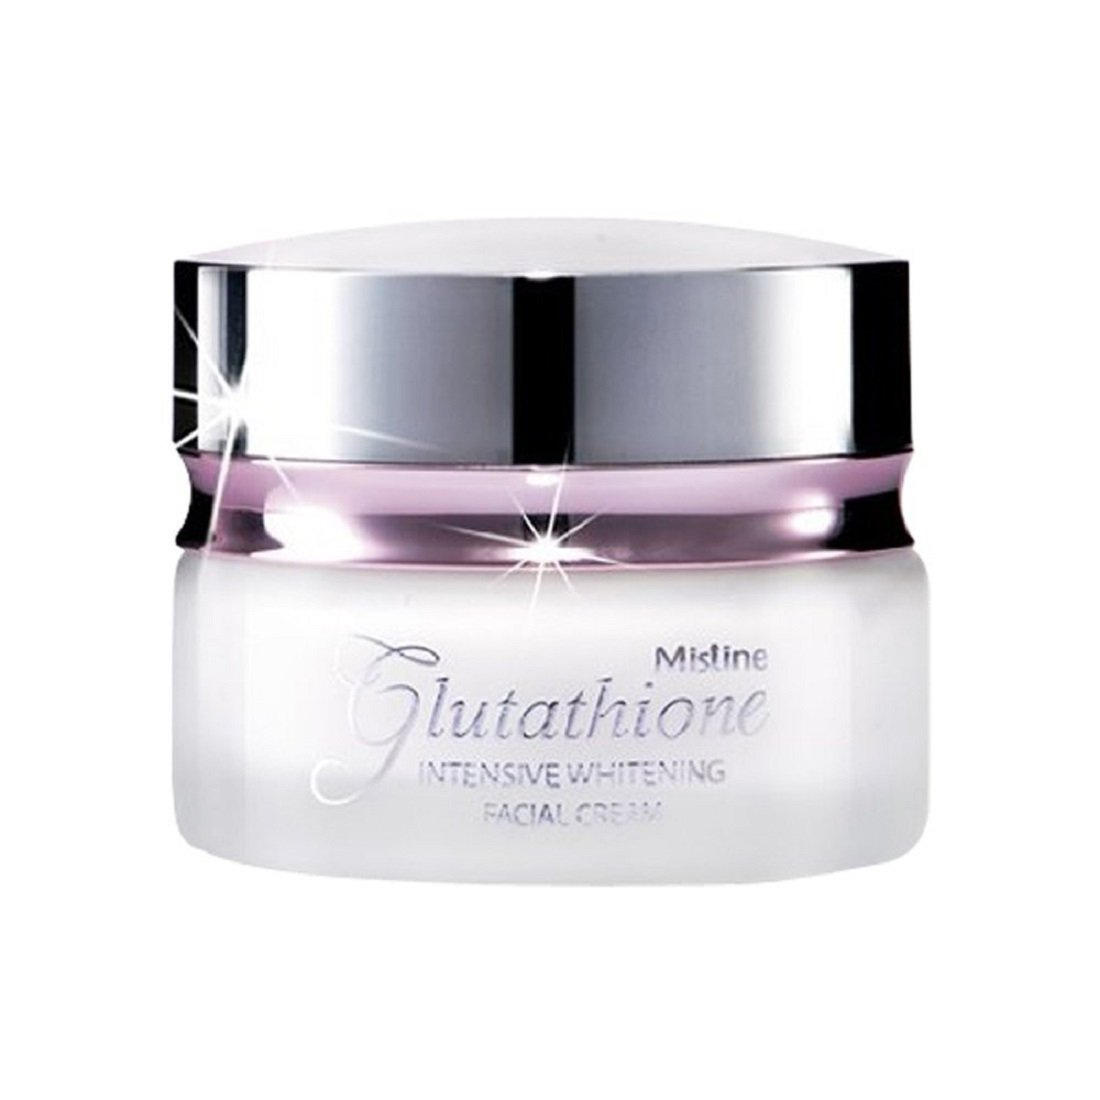 Best Mistine Whitening Cream Glutathione Intensive Whitening Facial Cream 30 G. by Glutathione Cream L-0934354